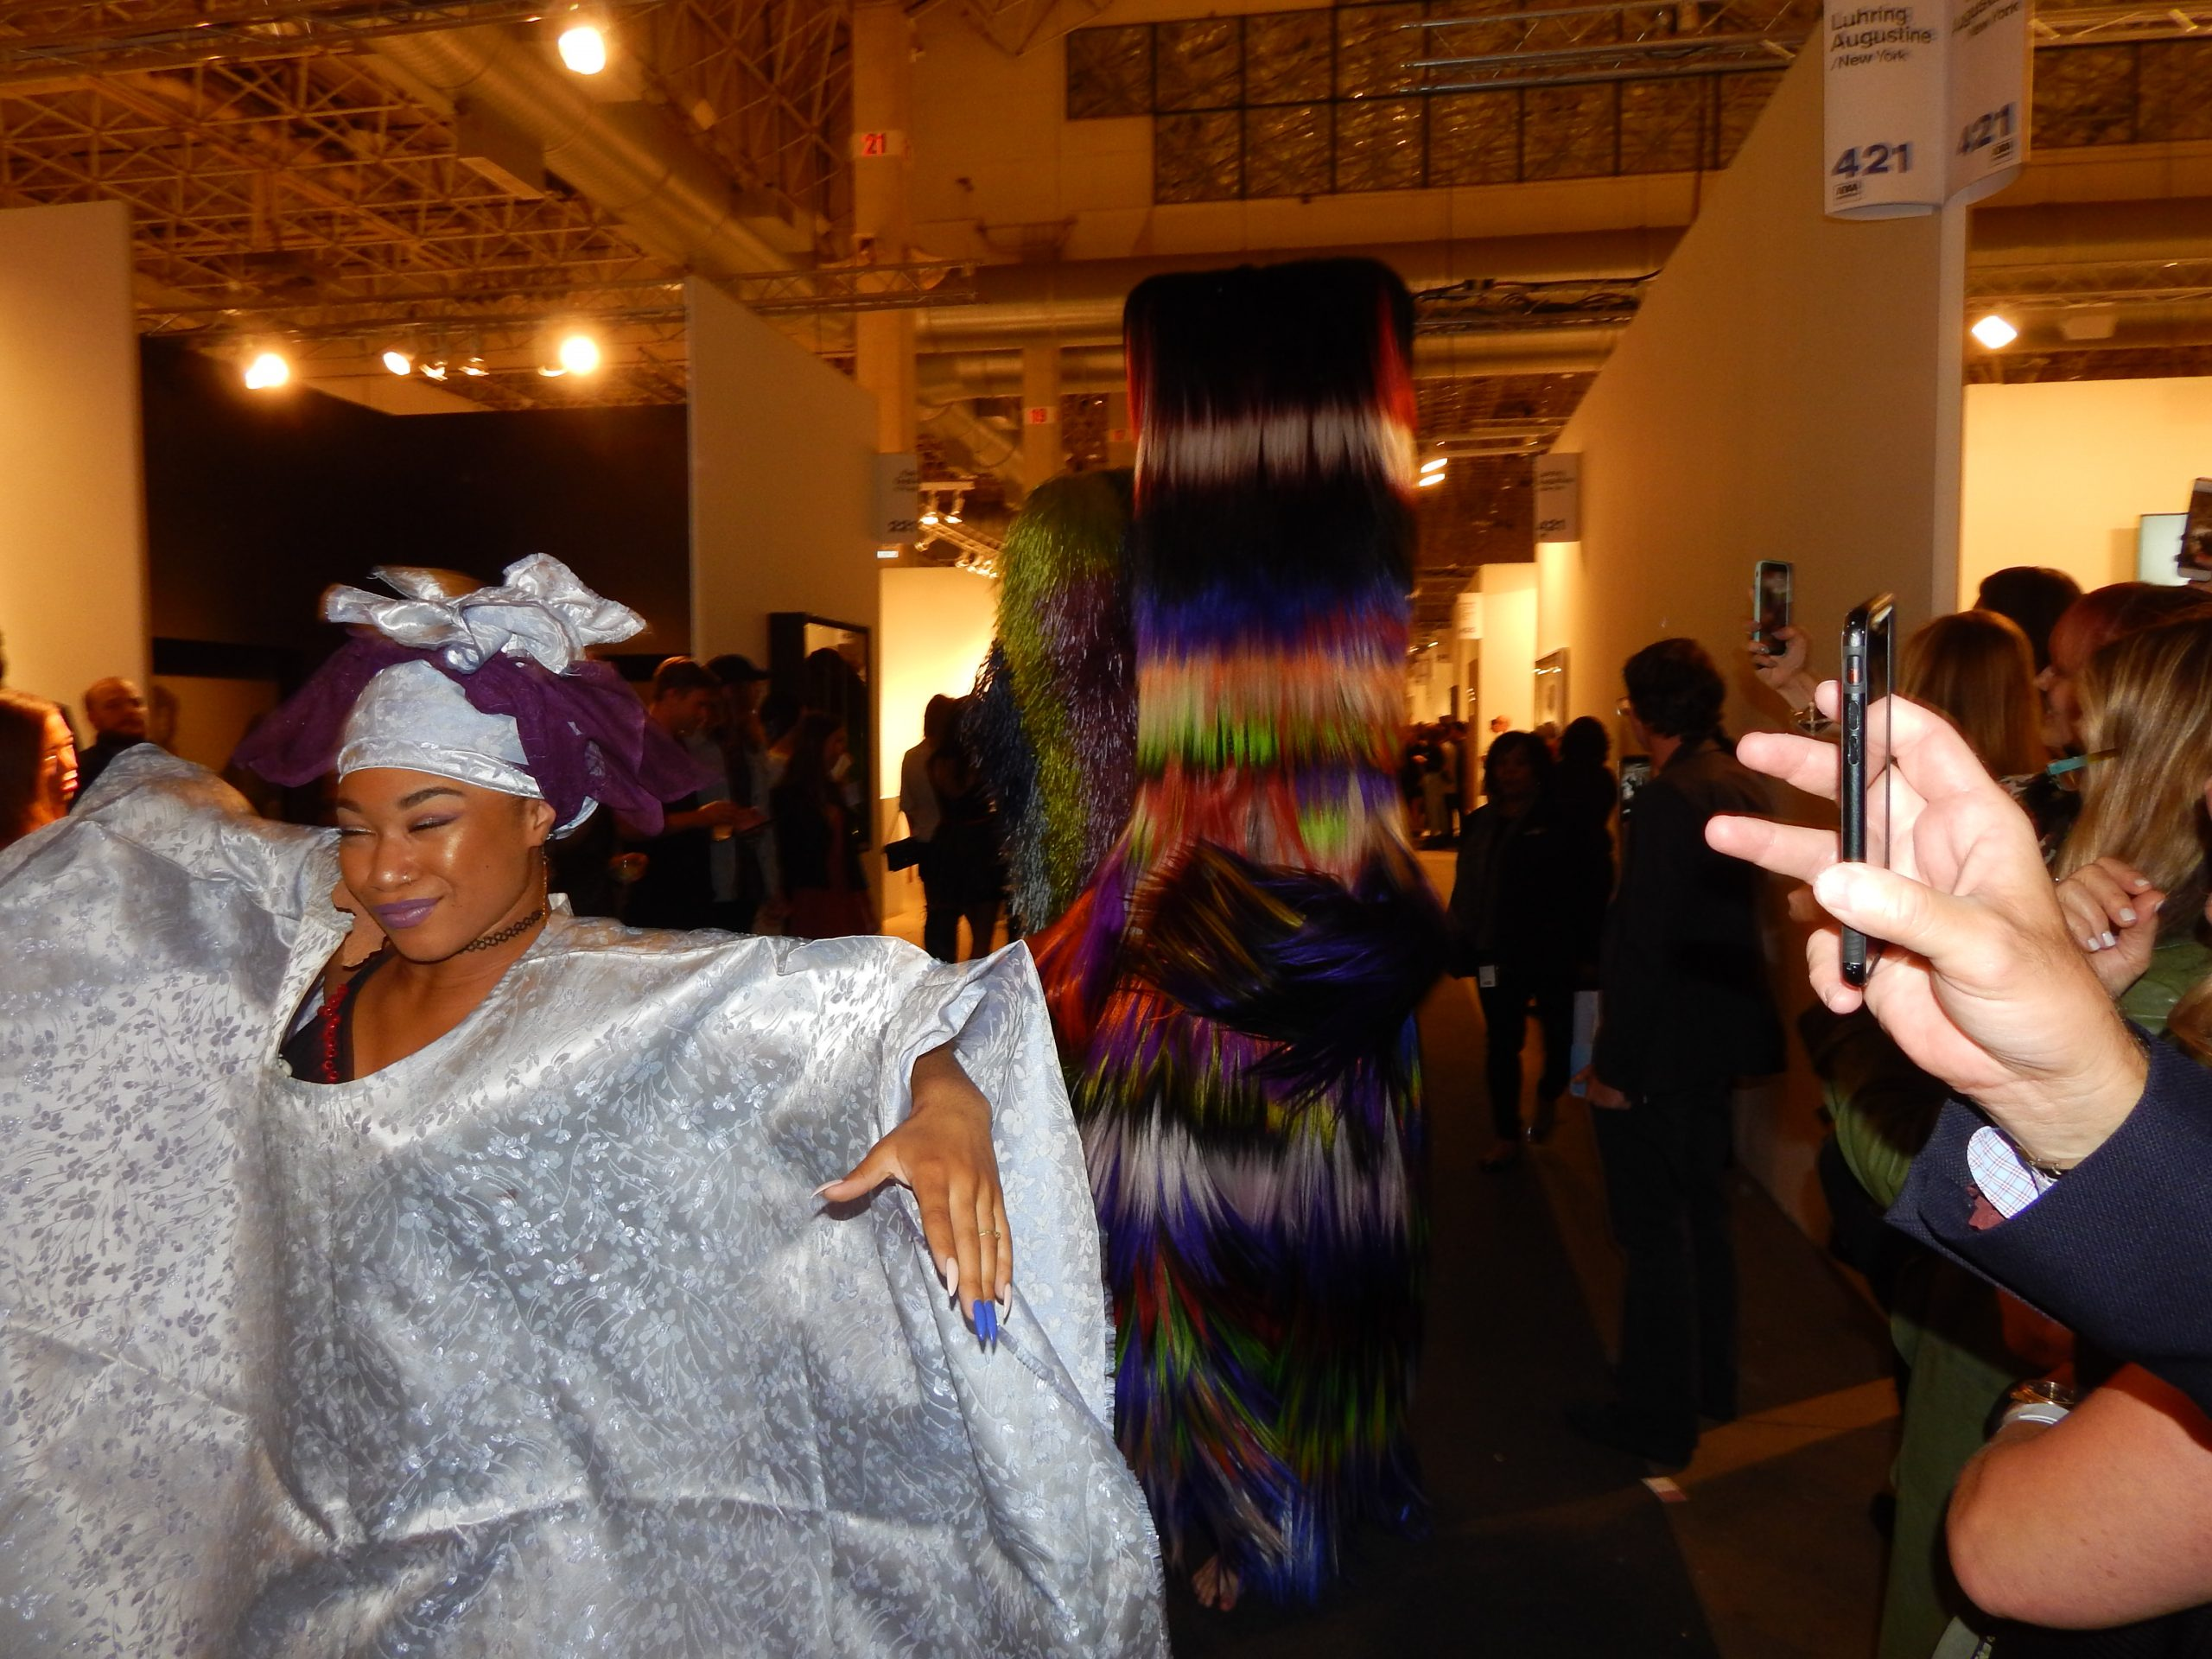 Like the Pied Piper, Nick Cave's dancers and fanciful creatures emptied the Expo galleries.